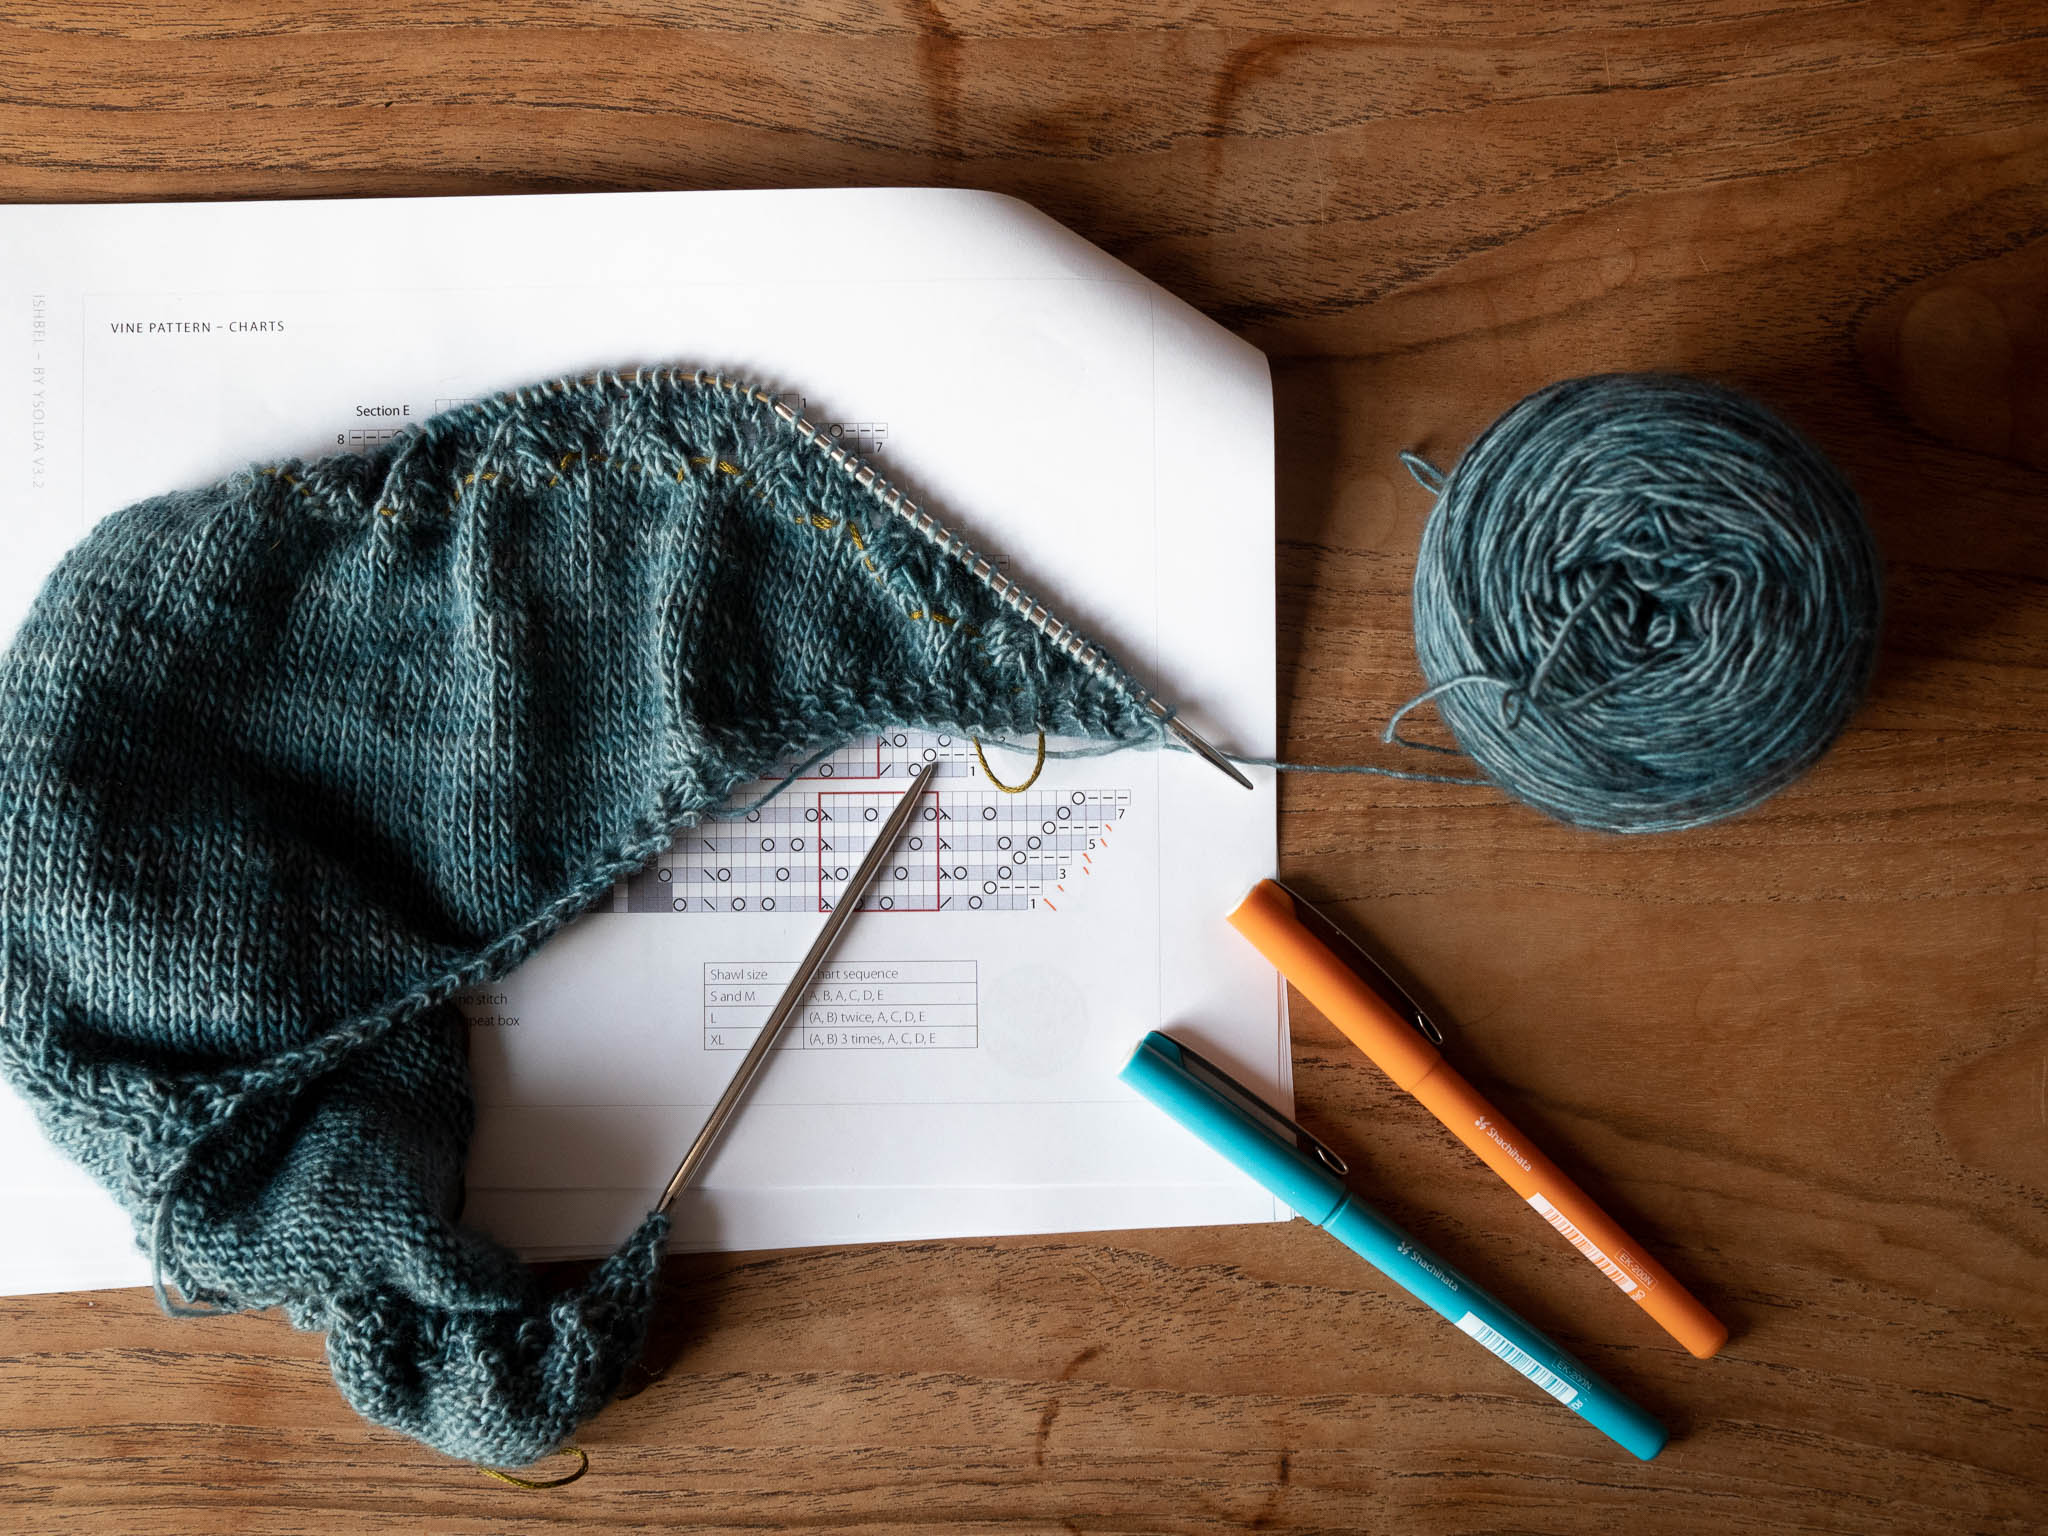 An in progress shawl with a printed chart and pens